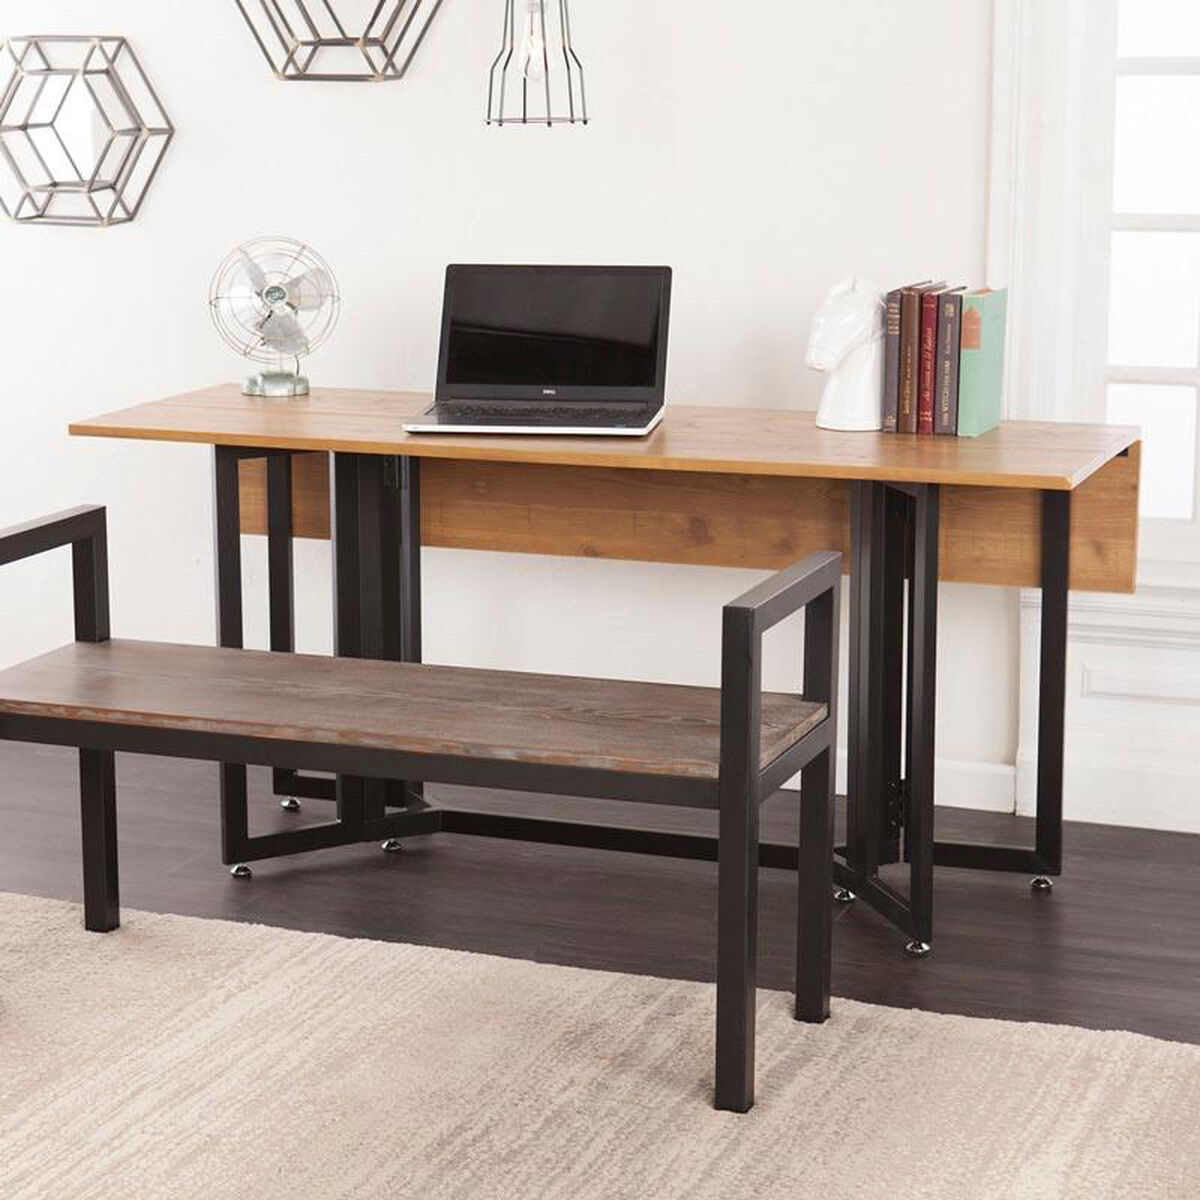 Holly and martin driness contemporary drop leaf 63 39 39 w x 29 for Pull down kitchen table